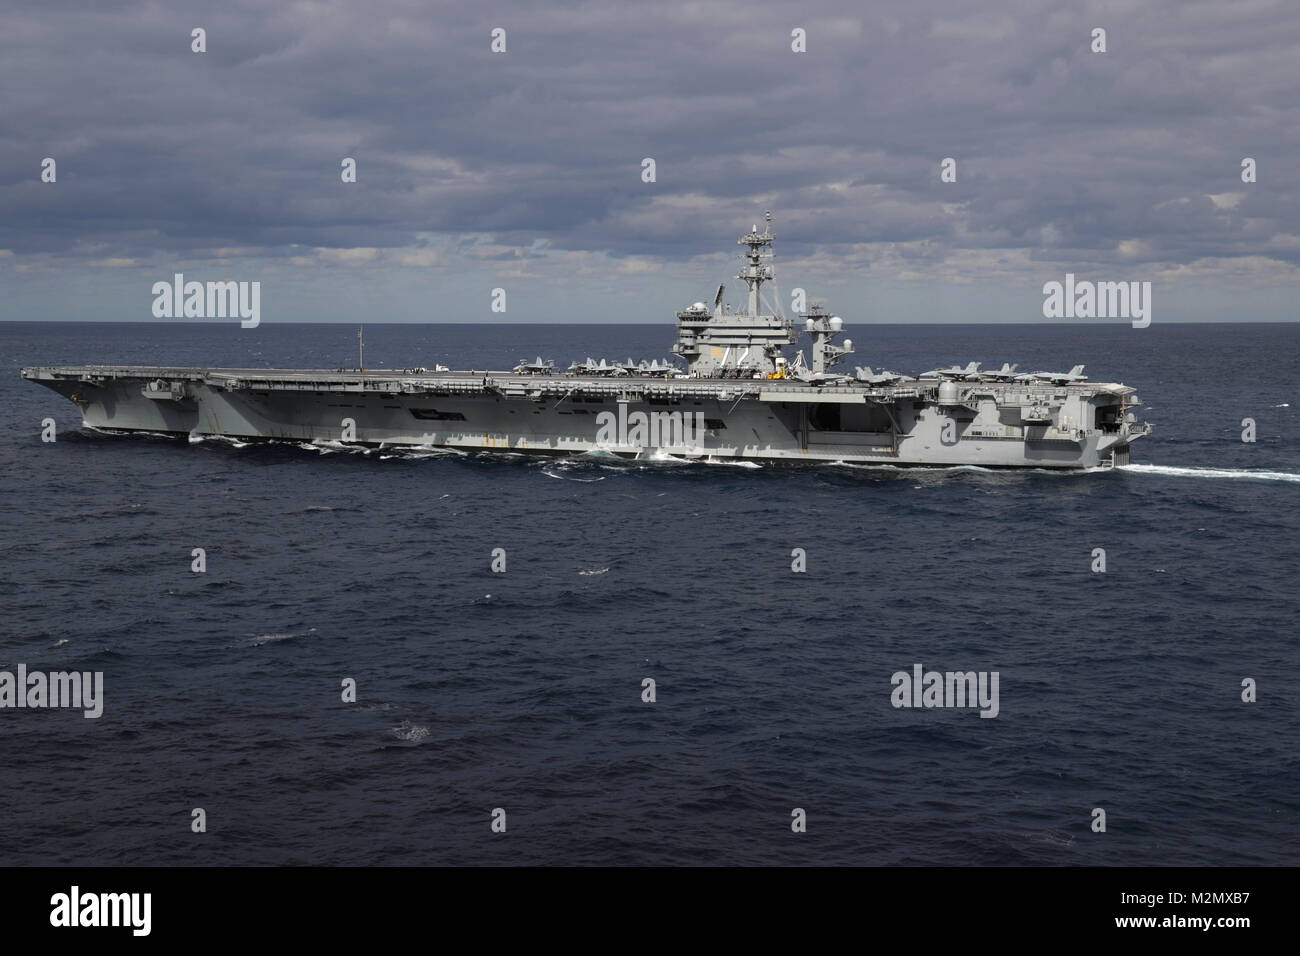 180201-N-PW716-0112 ATLANTIC OCEAN (Feb. 1, 2018) The Nimitz-class aircraft carrier USS Abraham Lincoln (CVN 72) - Stock Image